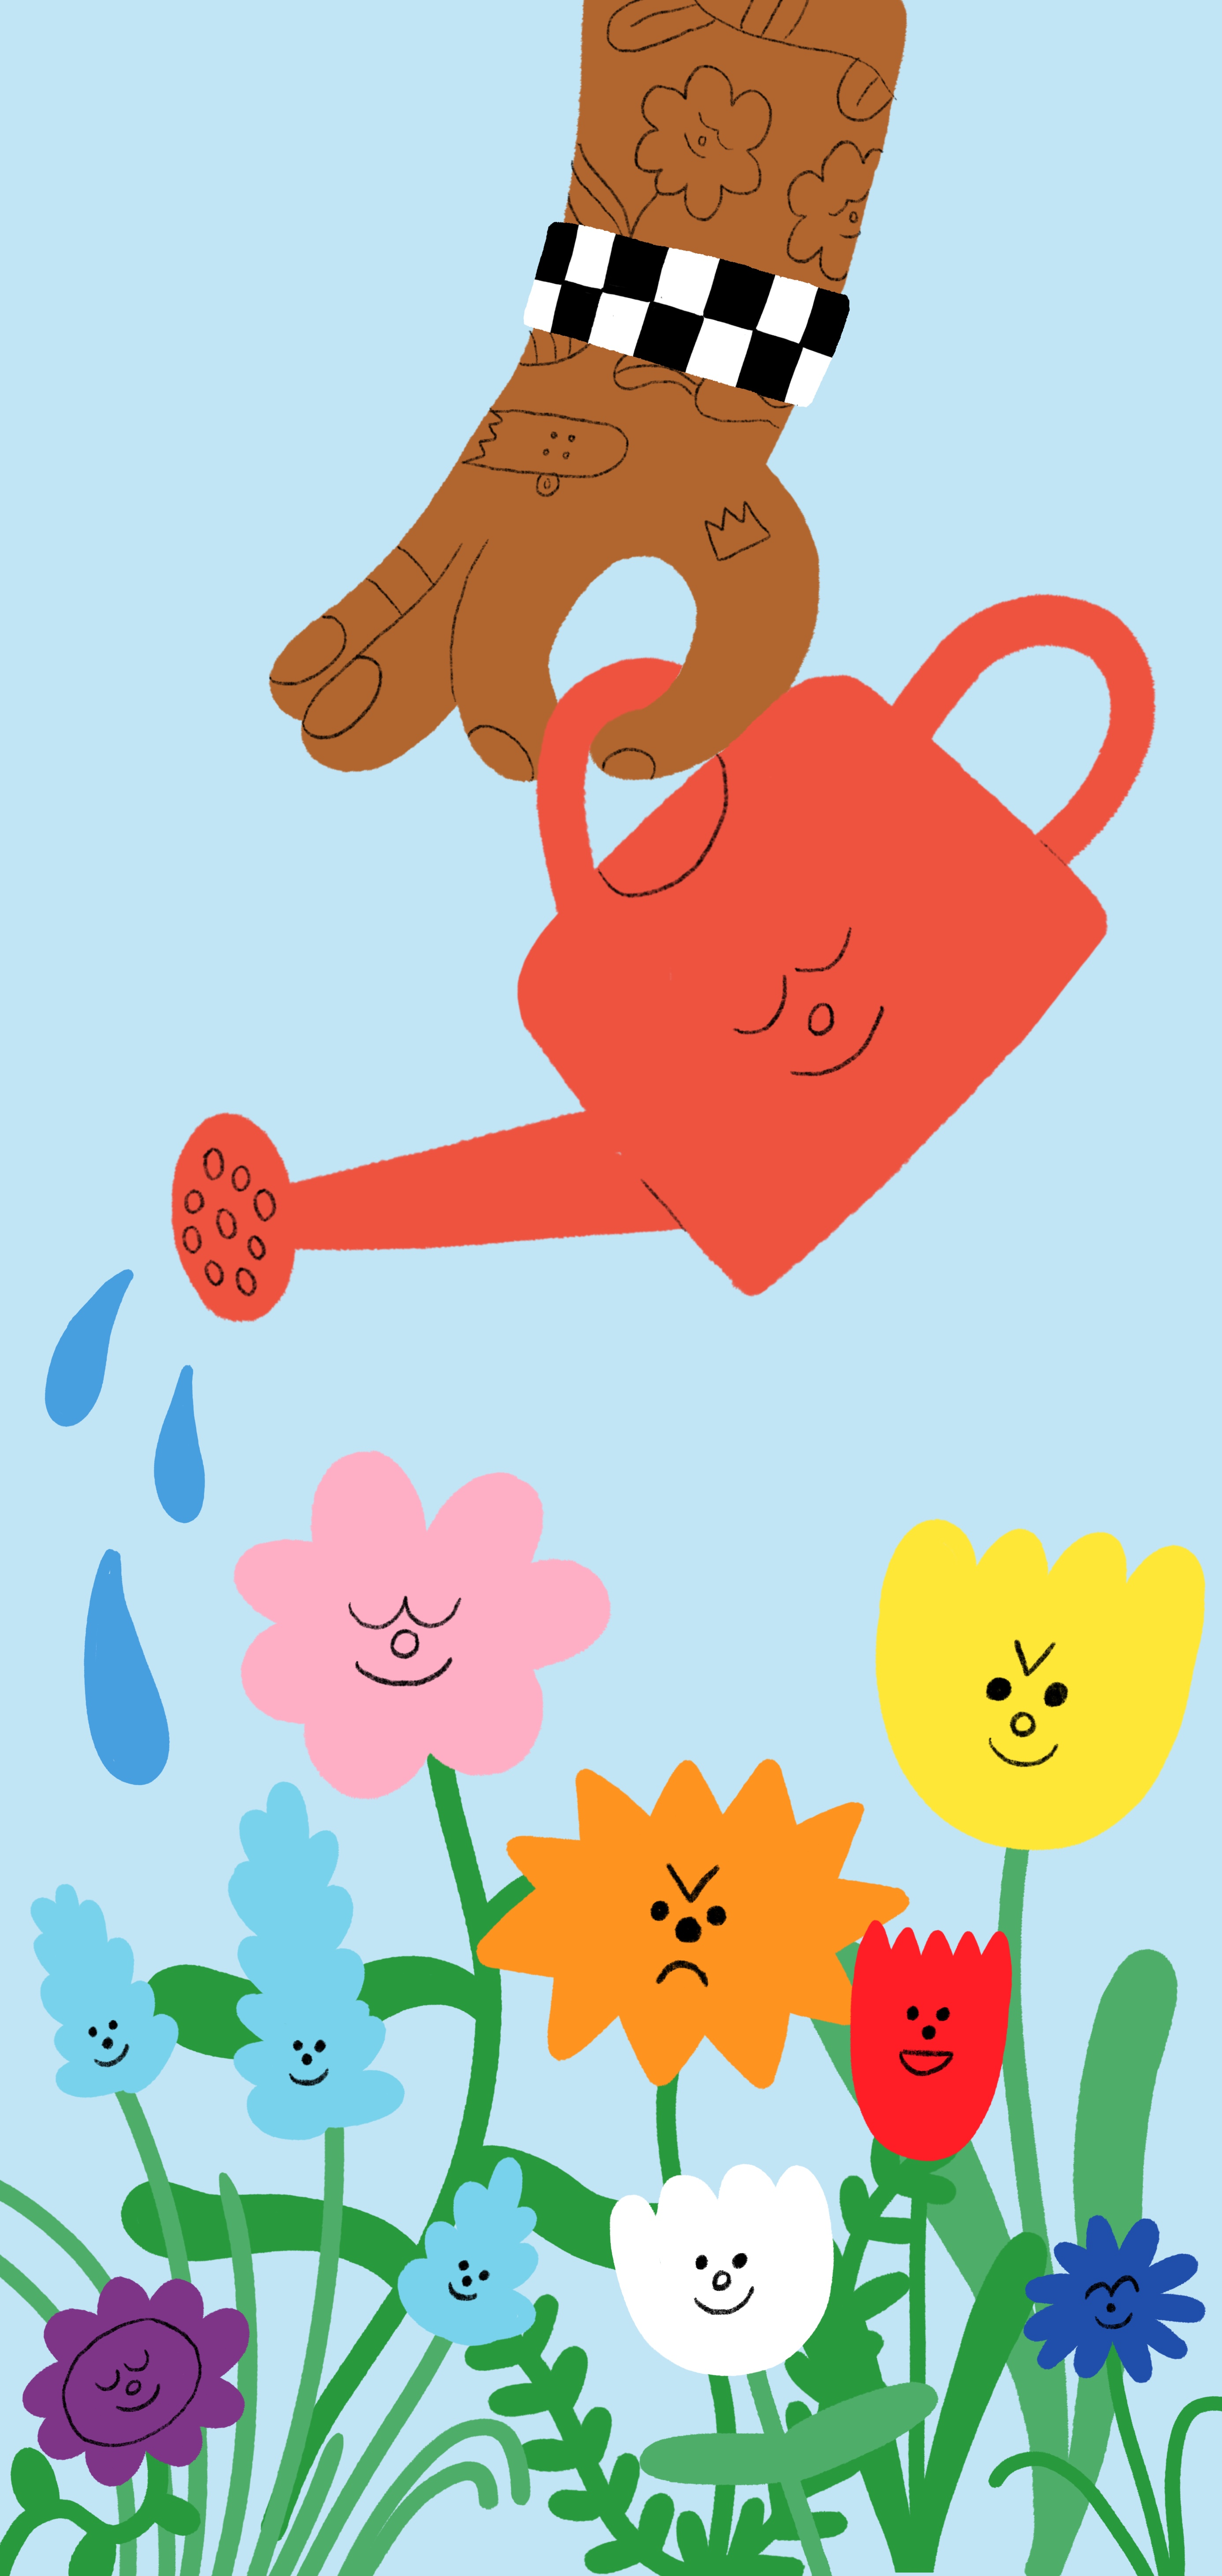 A brown hand holds a red watering can and tends to a garden of colourful flowers with sassy faces.